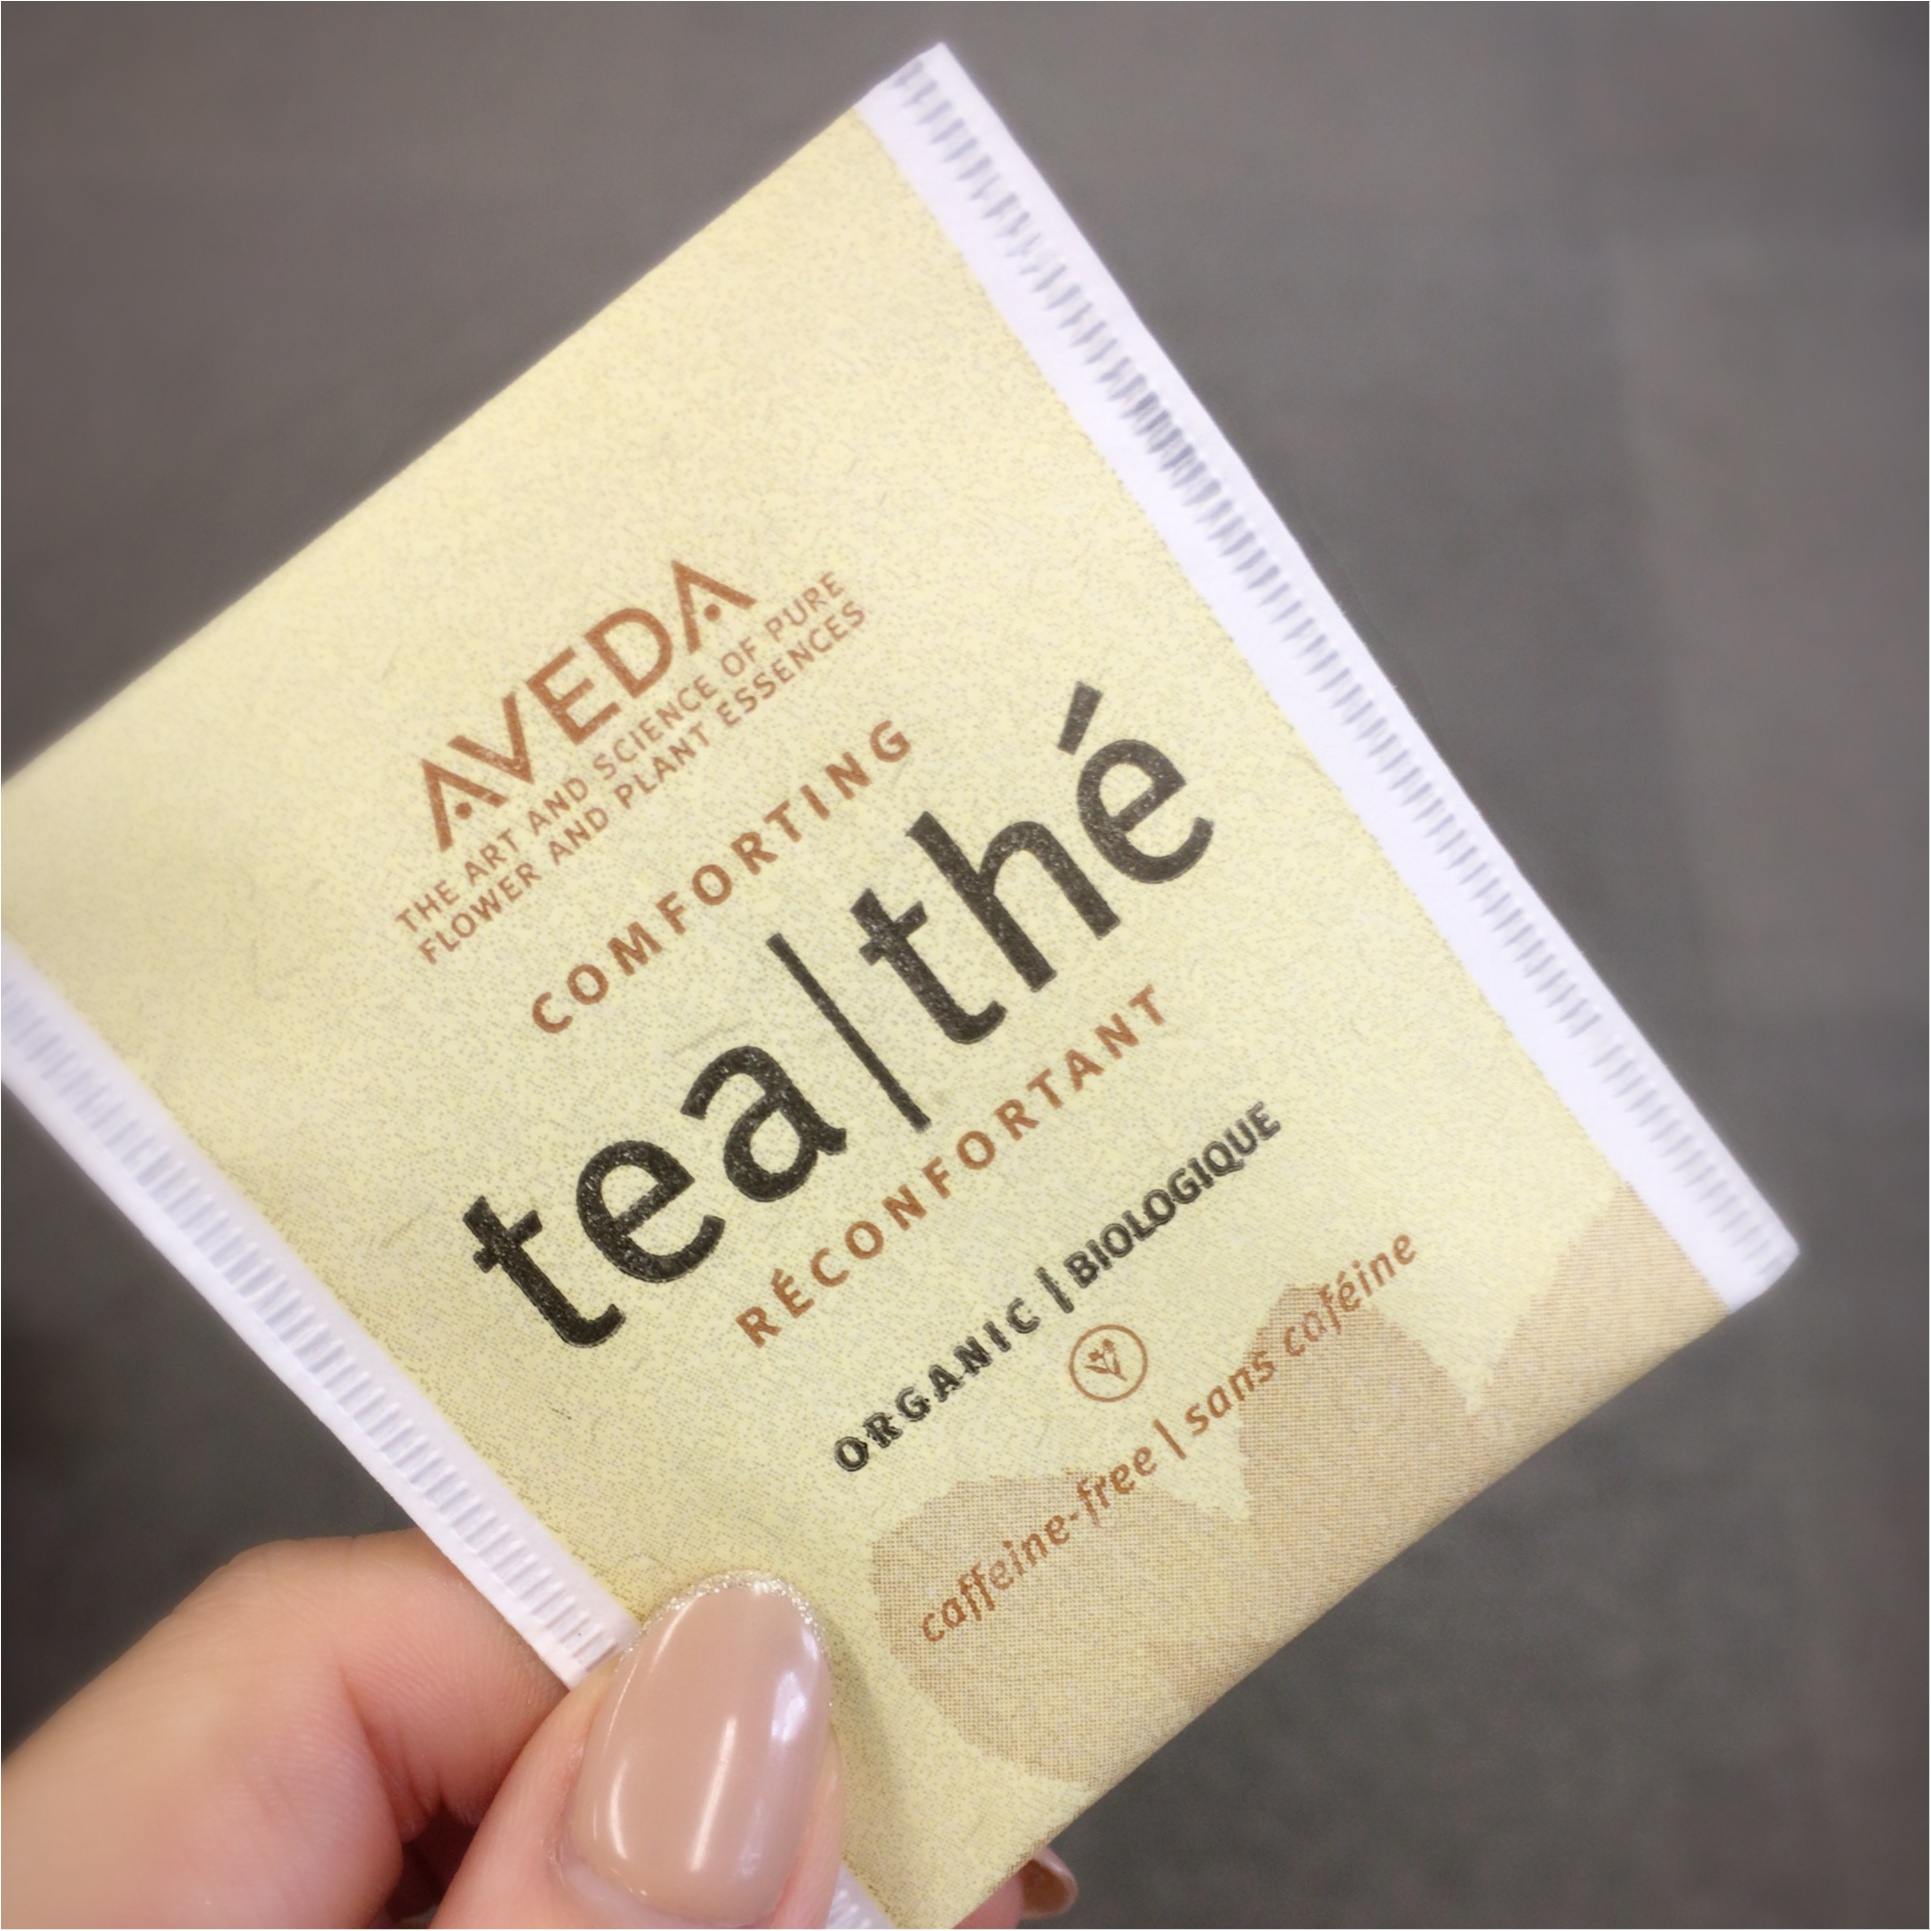 mint aveda comforting count com yogi comforter licorice teas herbal tea bags amazon egyptian dp